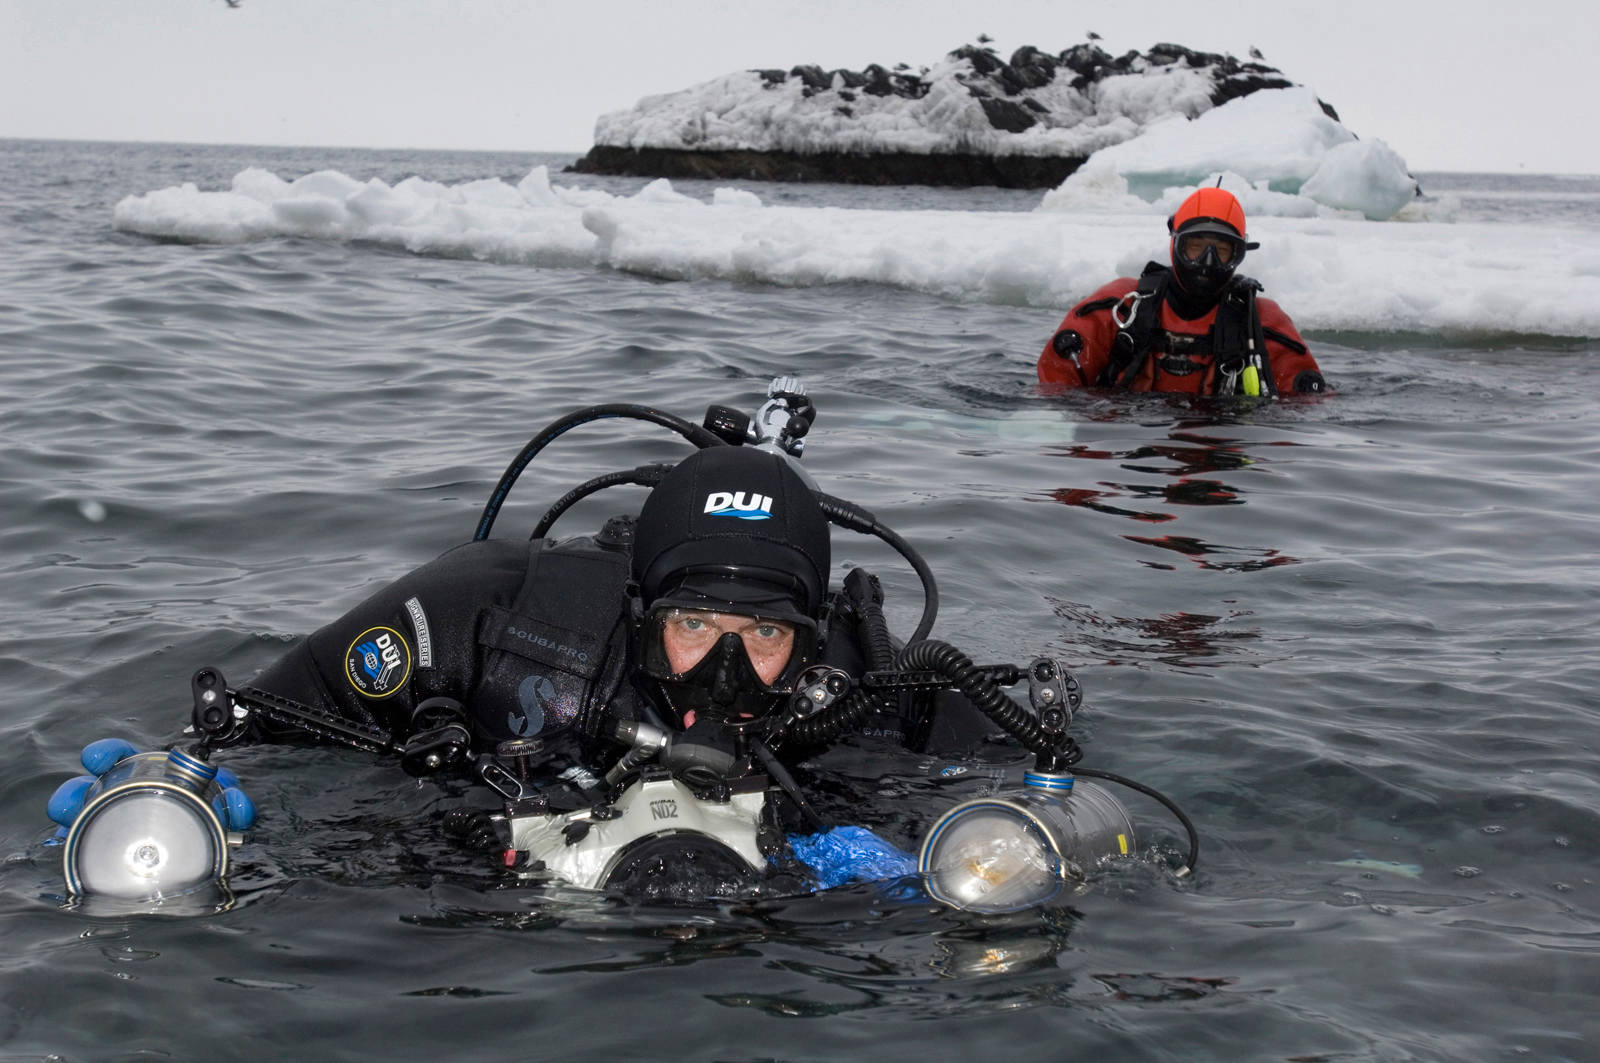 Brian Skerry prepares to dive in icy waters. <div class='credit'><strong>Credit:</strong> Brian Skerry prepares to dive in icy waters. </div>